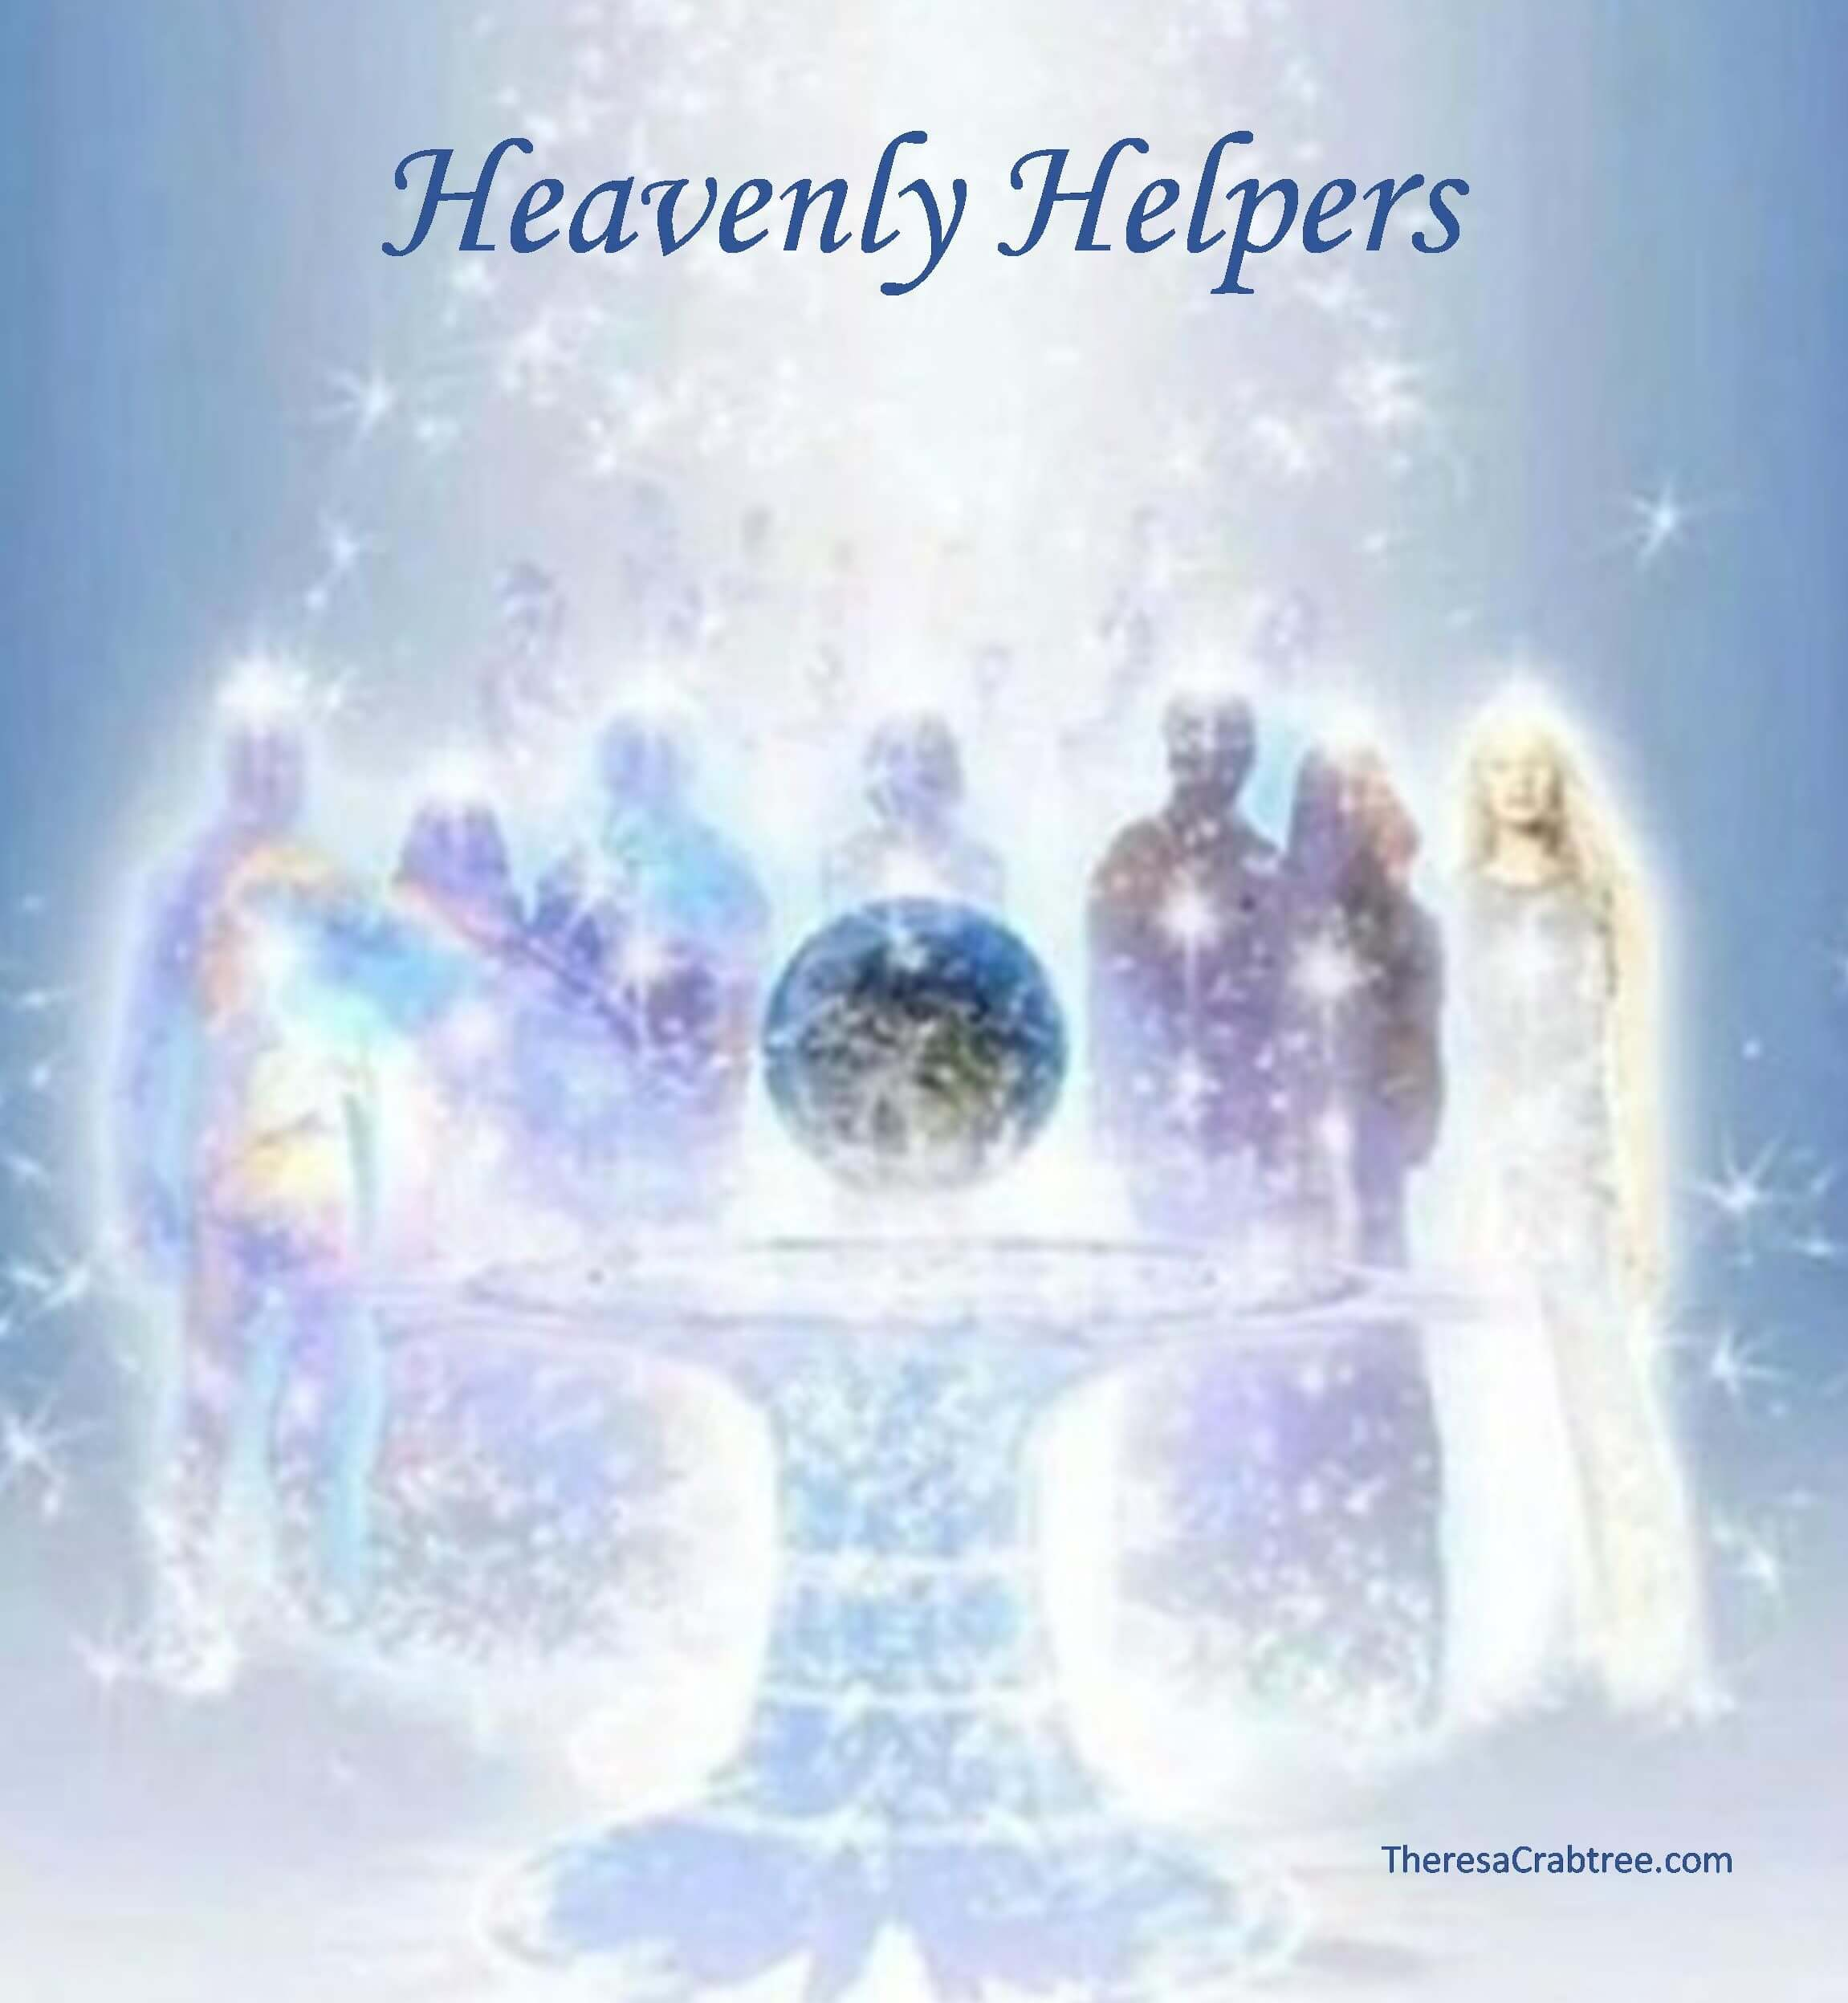 Heavenly Helpers